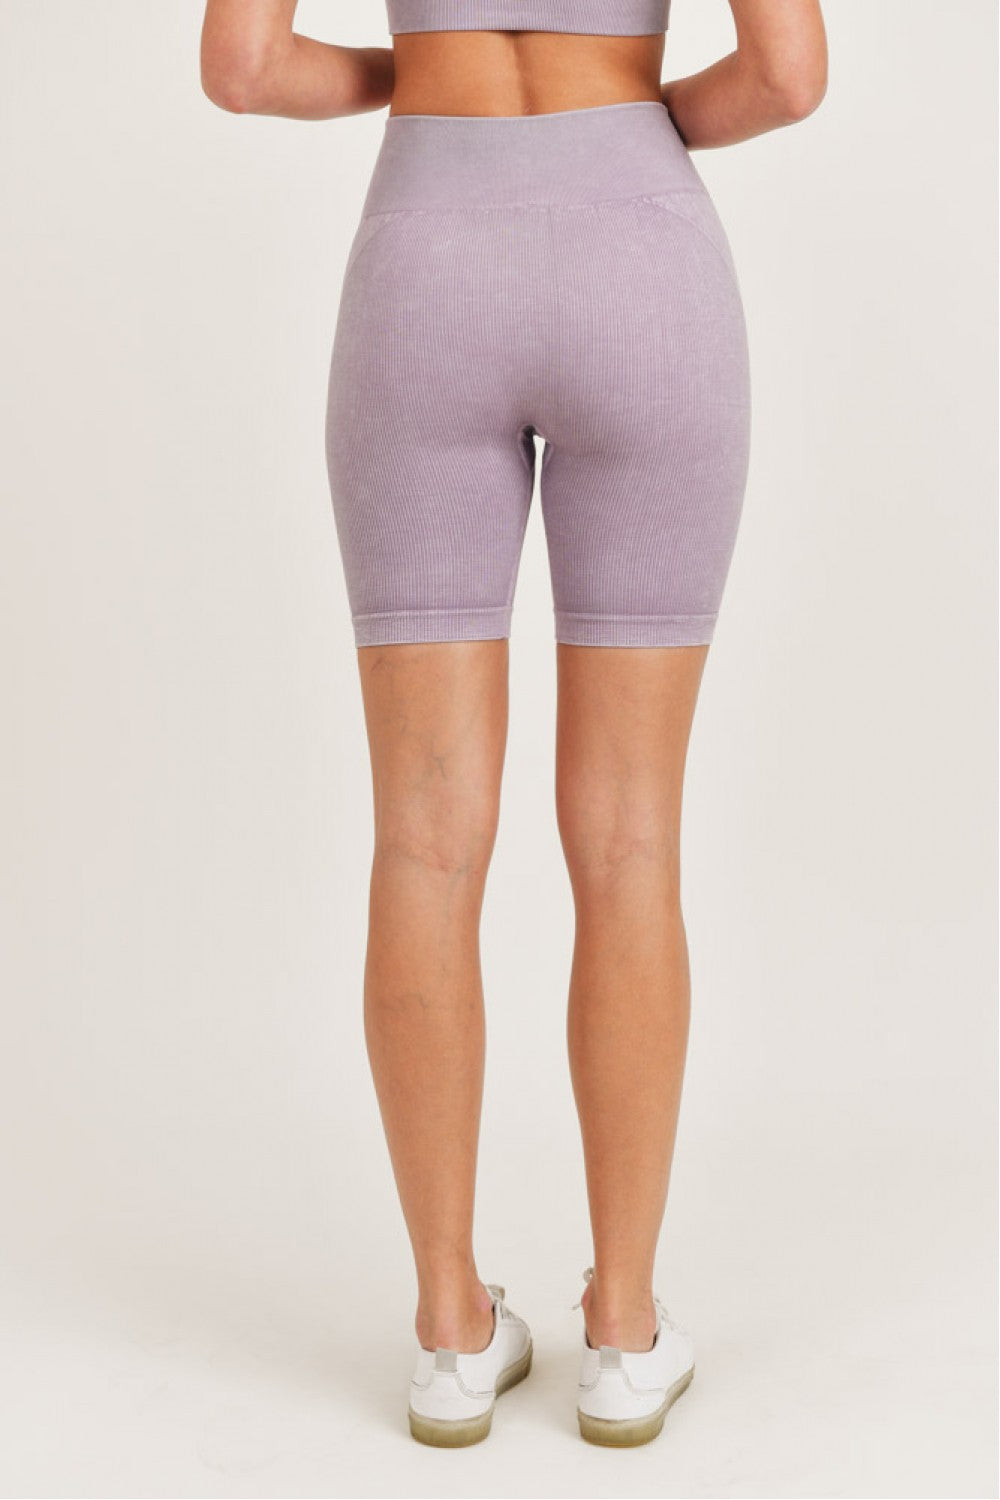 Mineral-Washed Seamless Biker Shorts